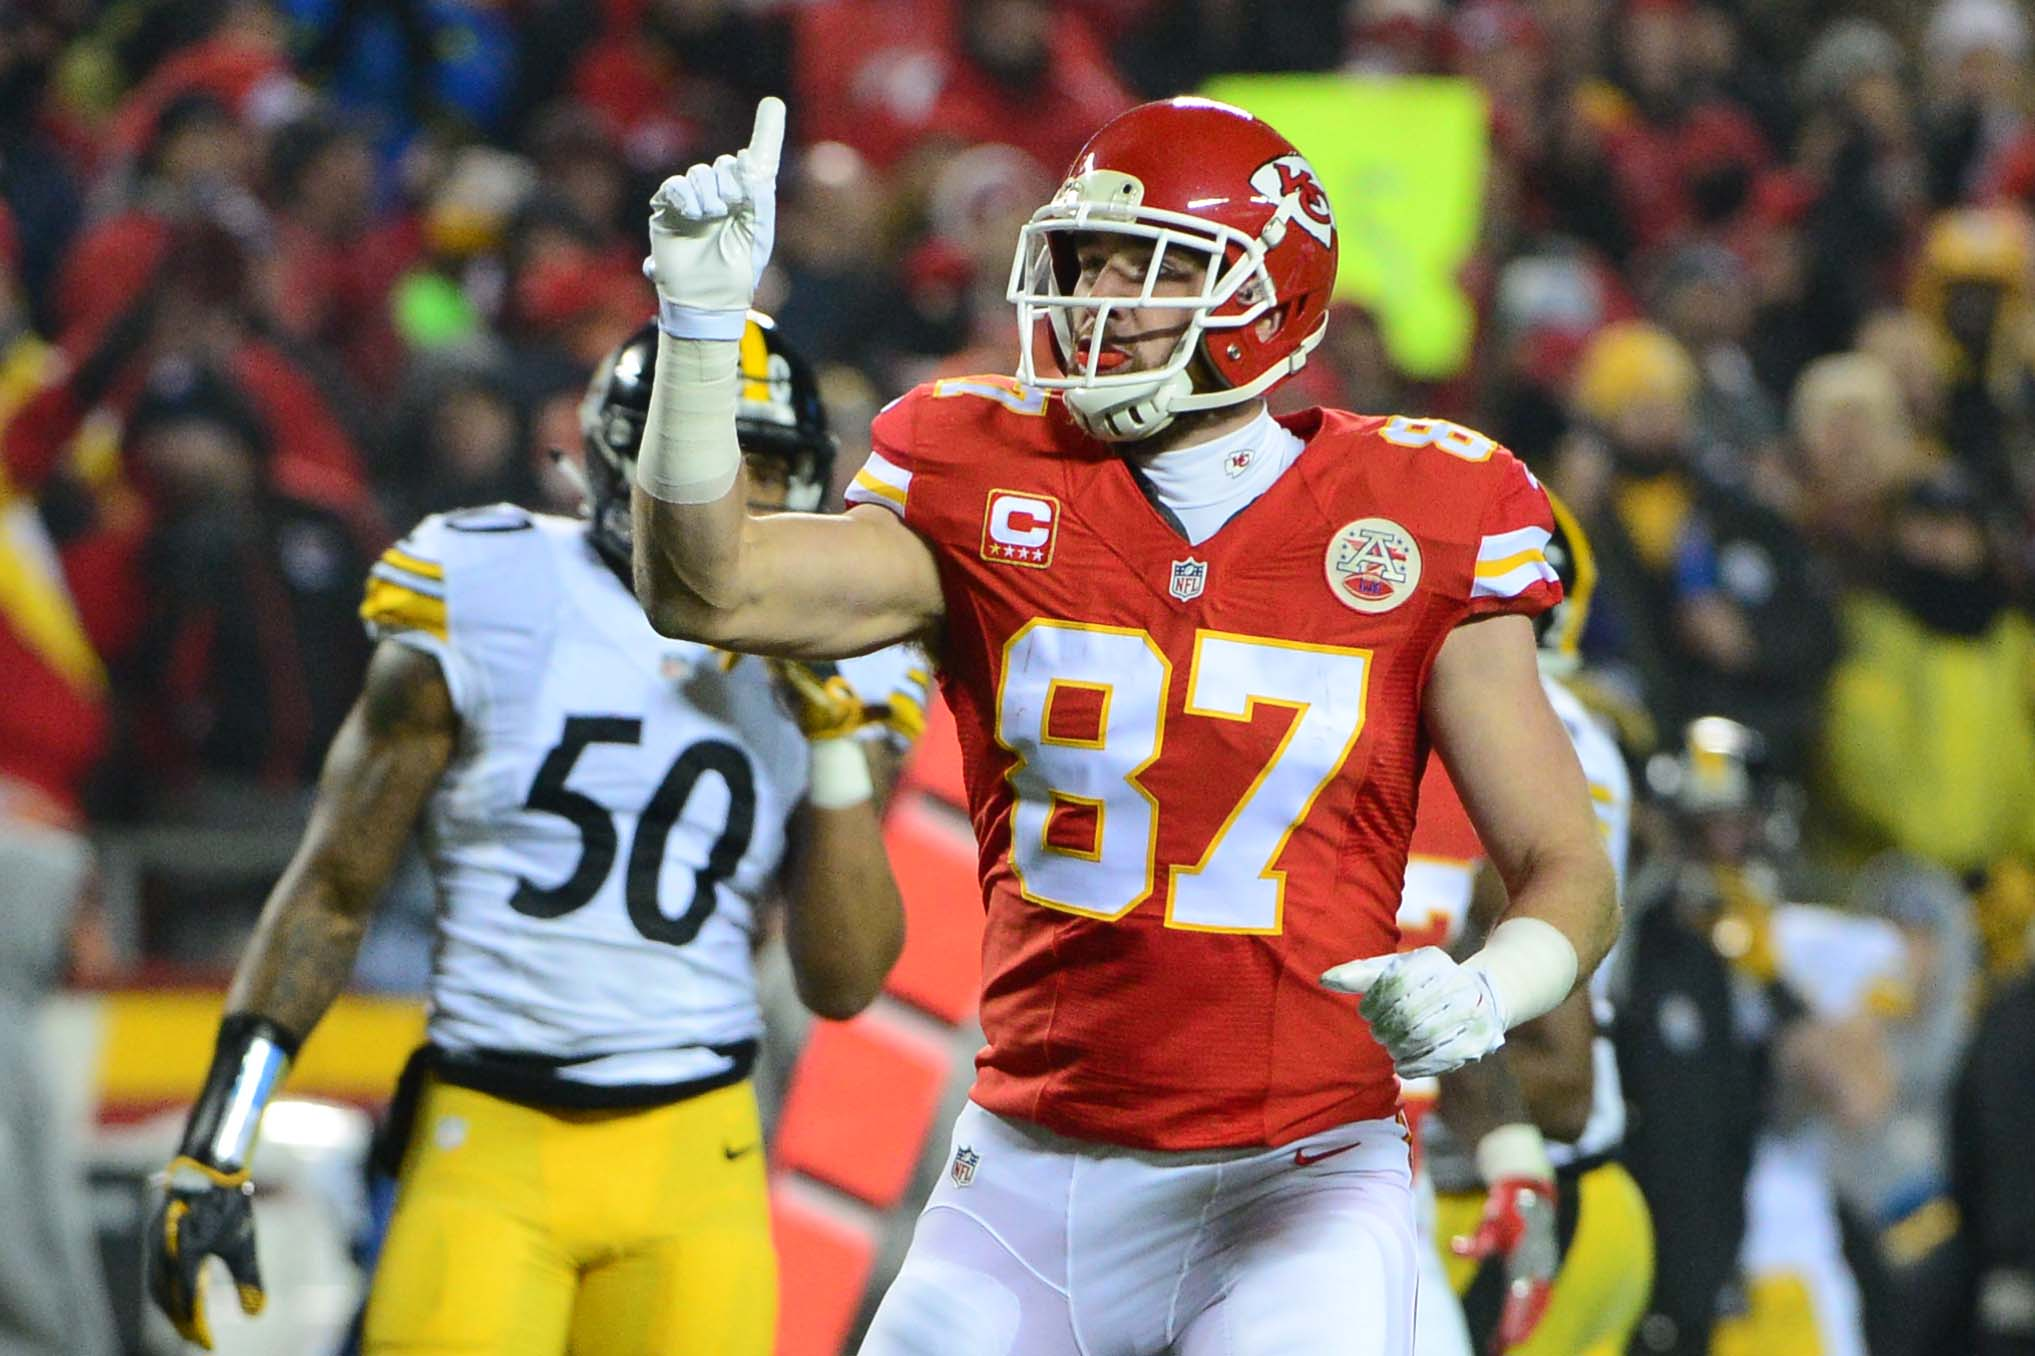 9812793-nfl-afc-divisional-pittsburgh-steelers-at-kansas-city-chiefs